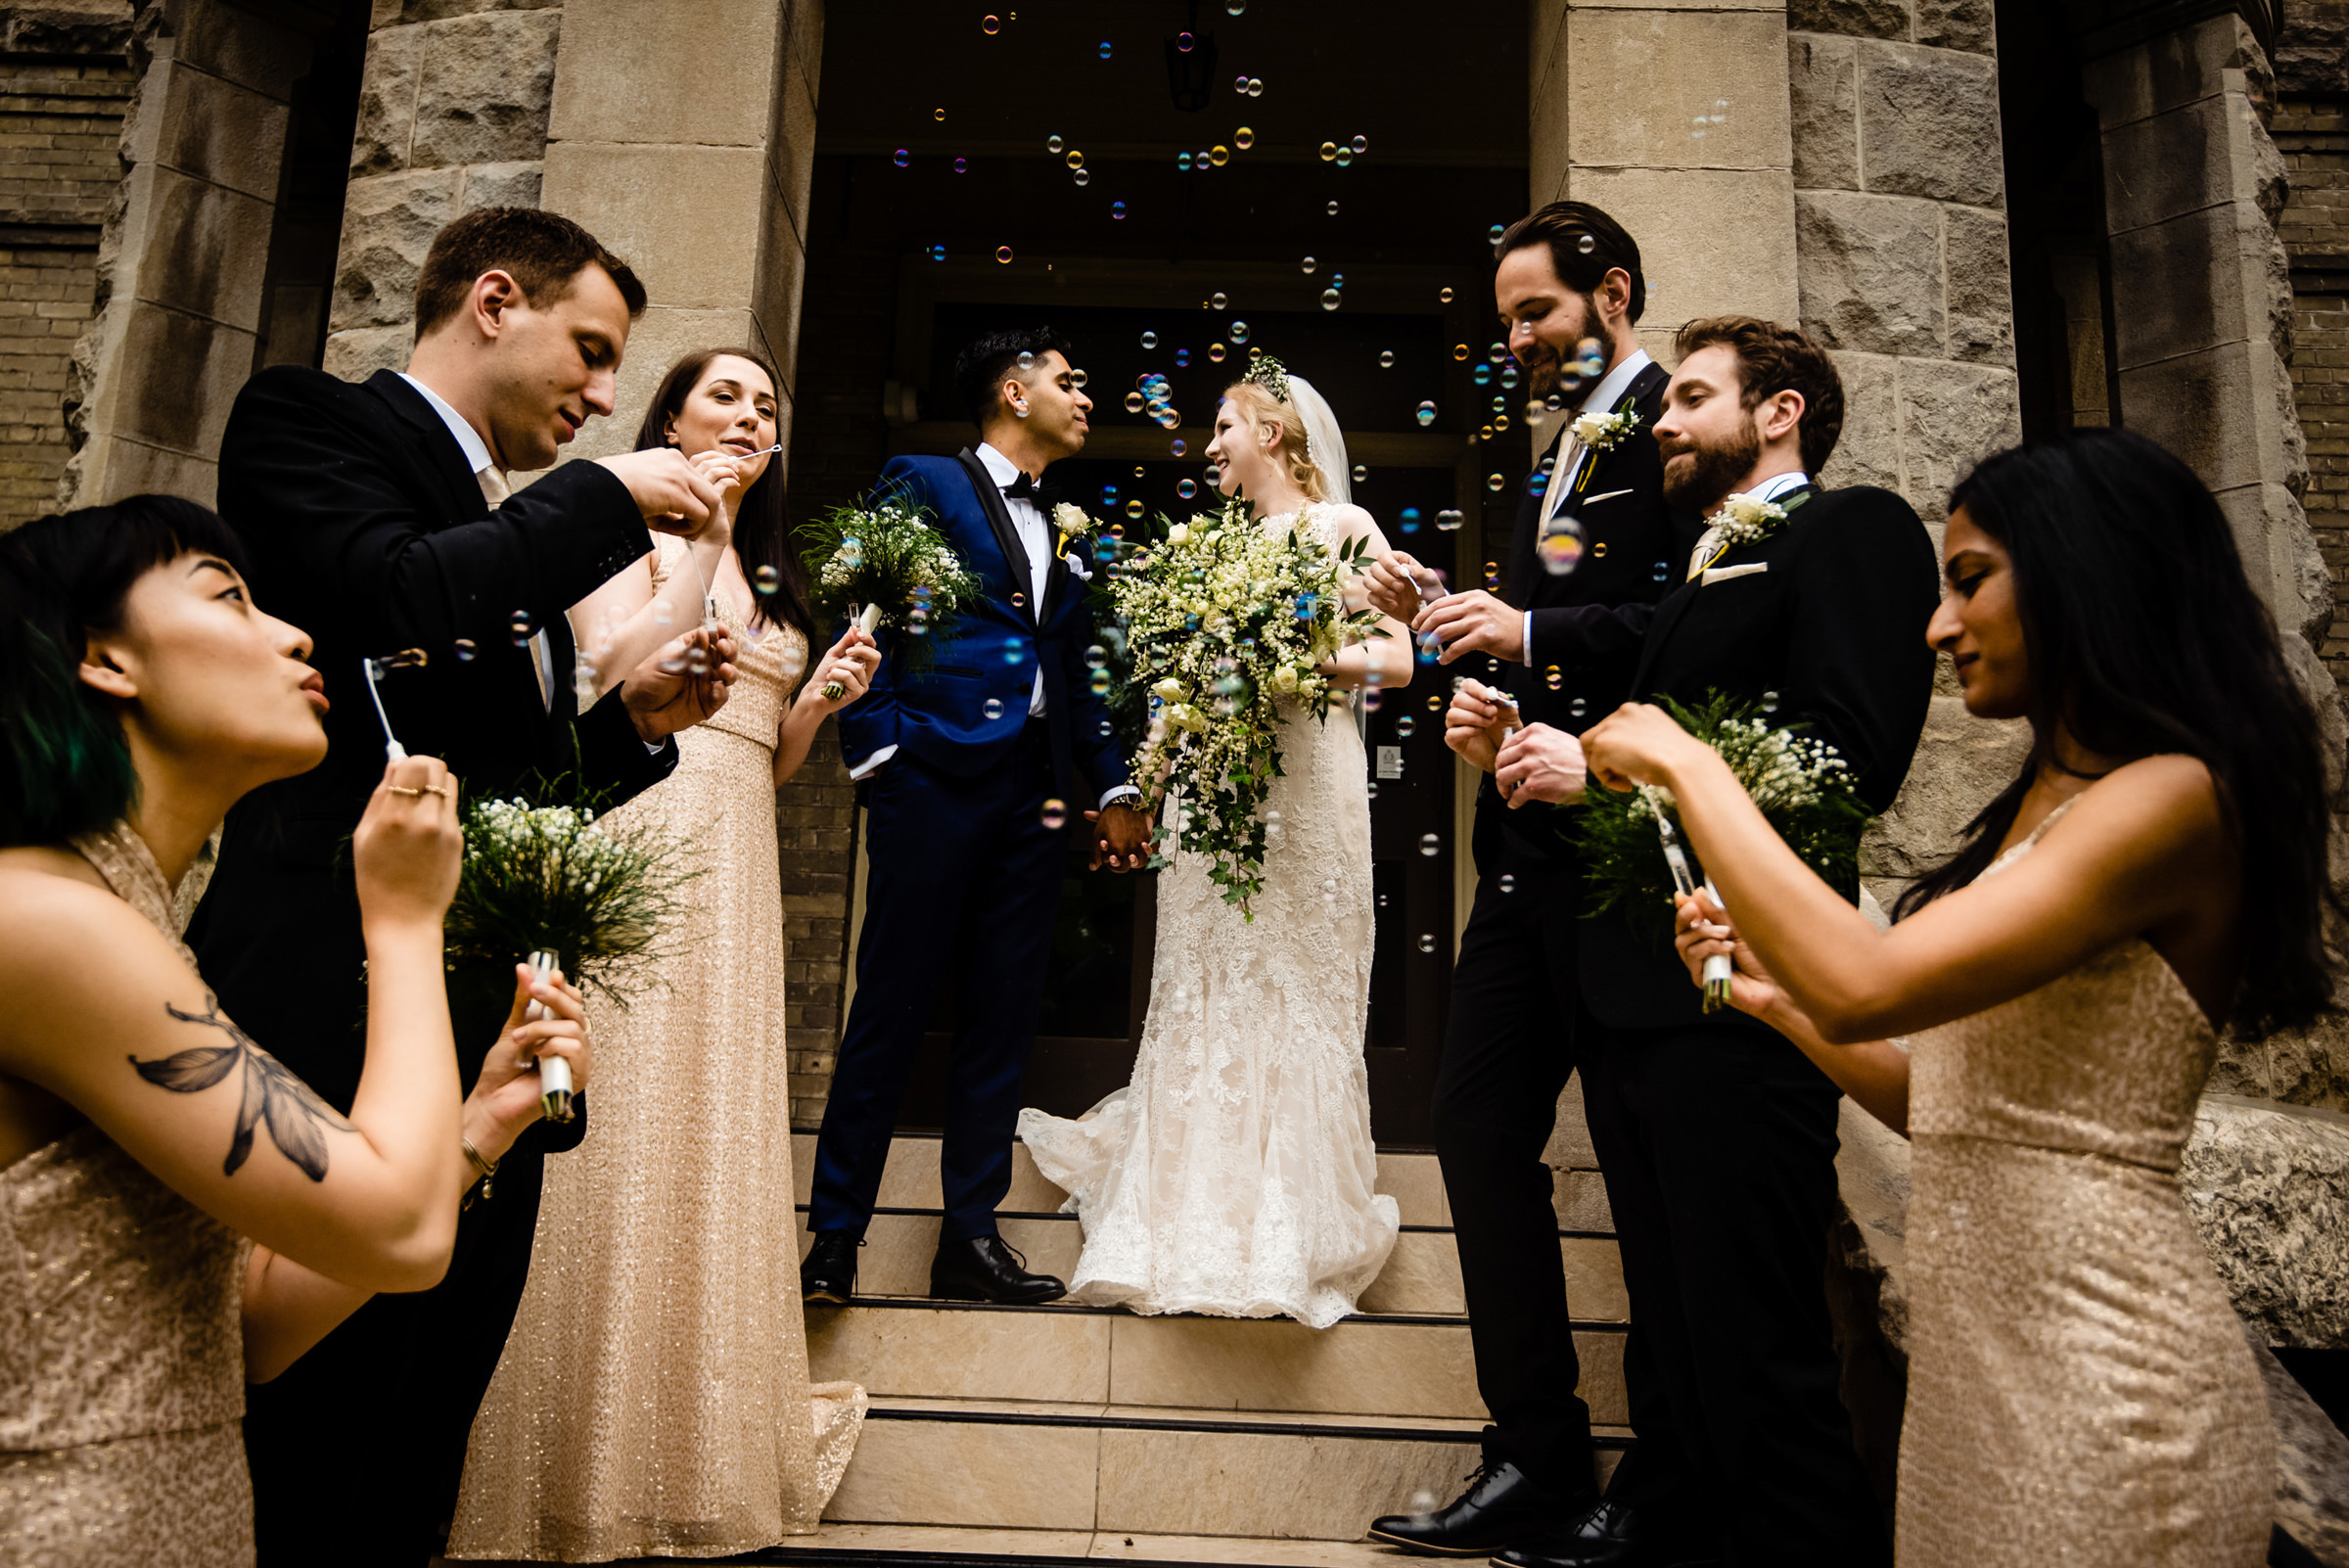 Couple exit church to bubble blowing bridal party - photo by Moore Photography